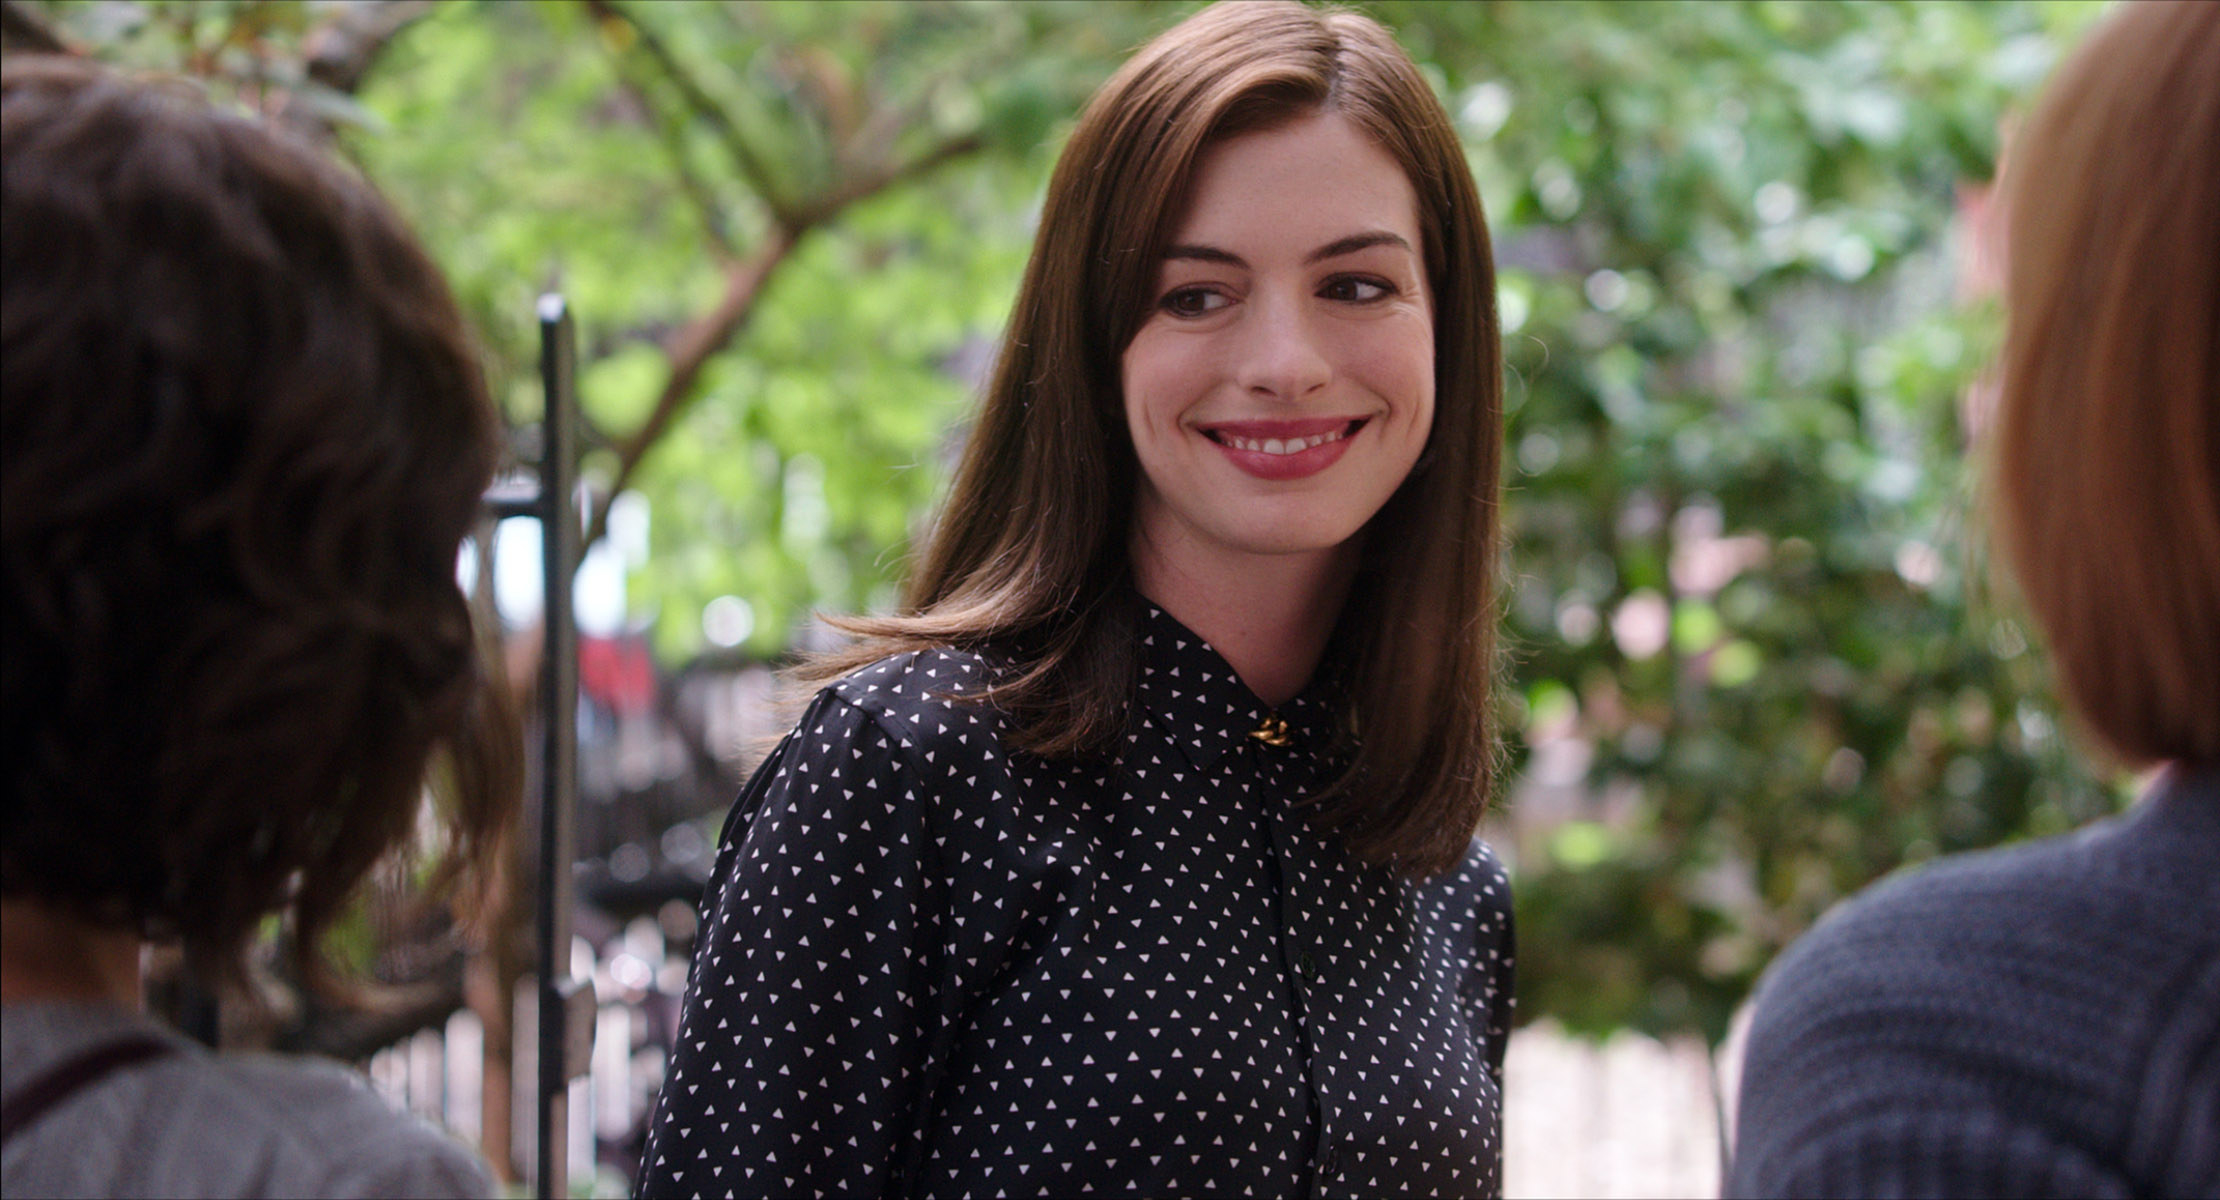 Anne Hathaway as Jules, smiling